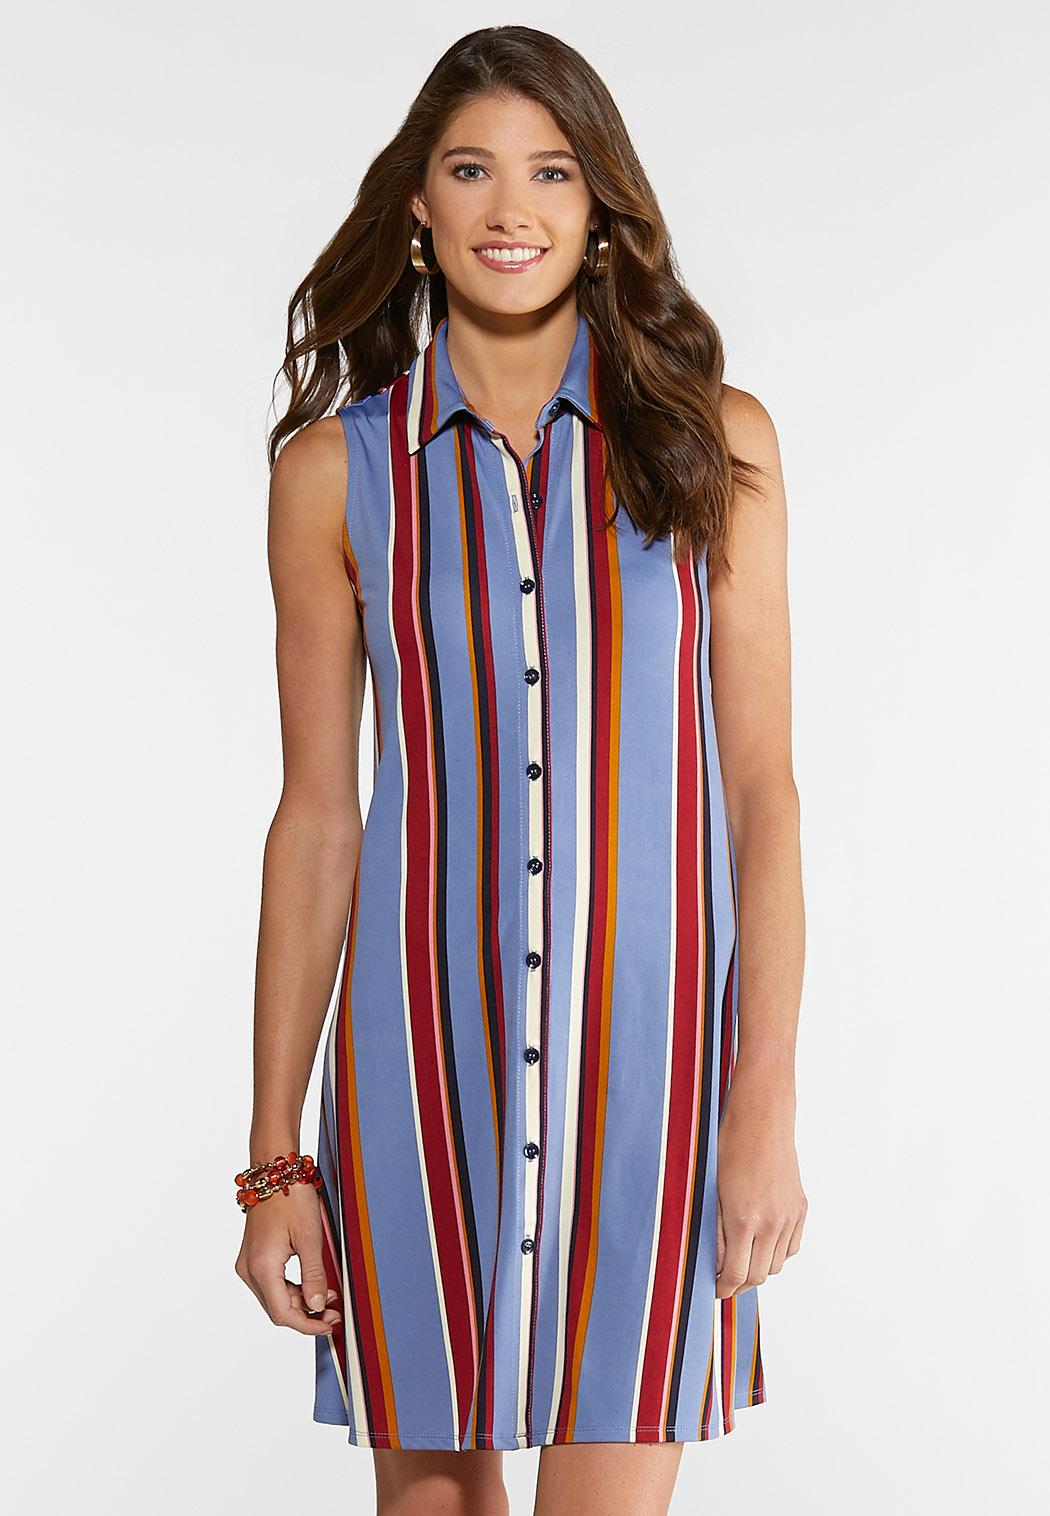 outlet store factory outlets new style Plus Size Striped Shirt Dress Plus Sizes Cato Fashions